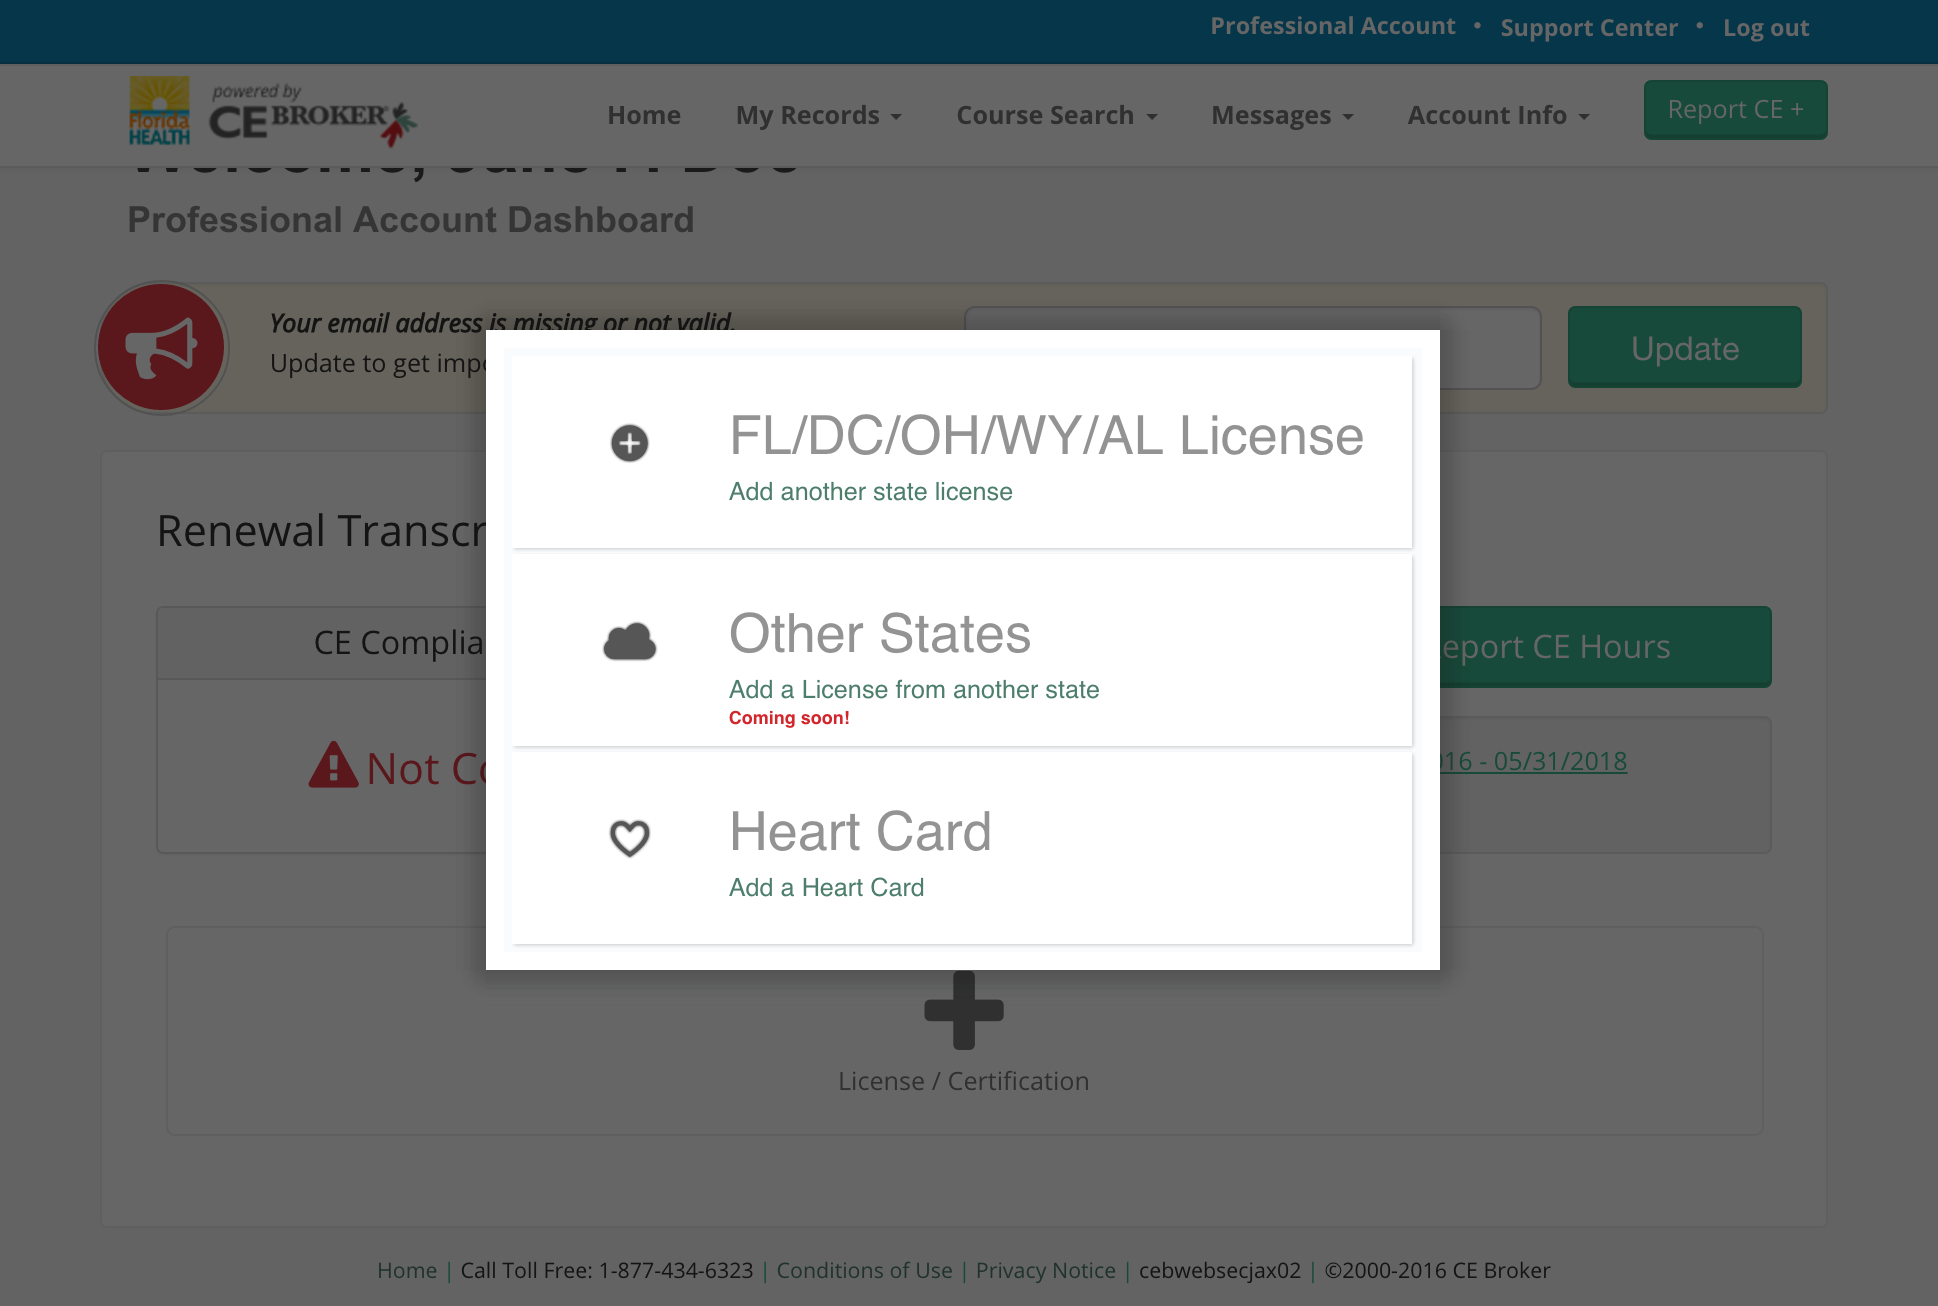 How Do I Store Digital Files Such As Heart Cards Ce Broker